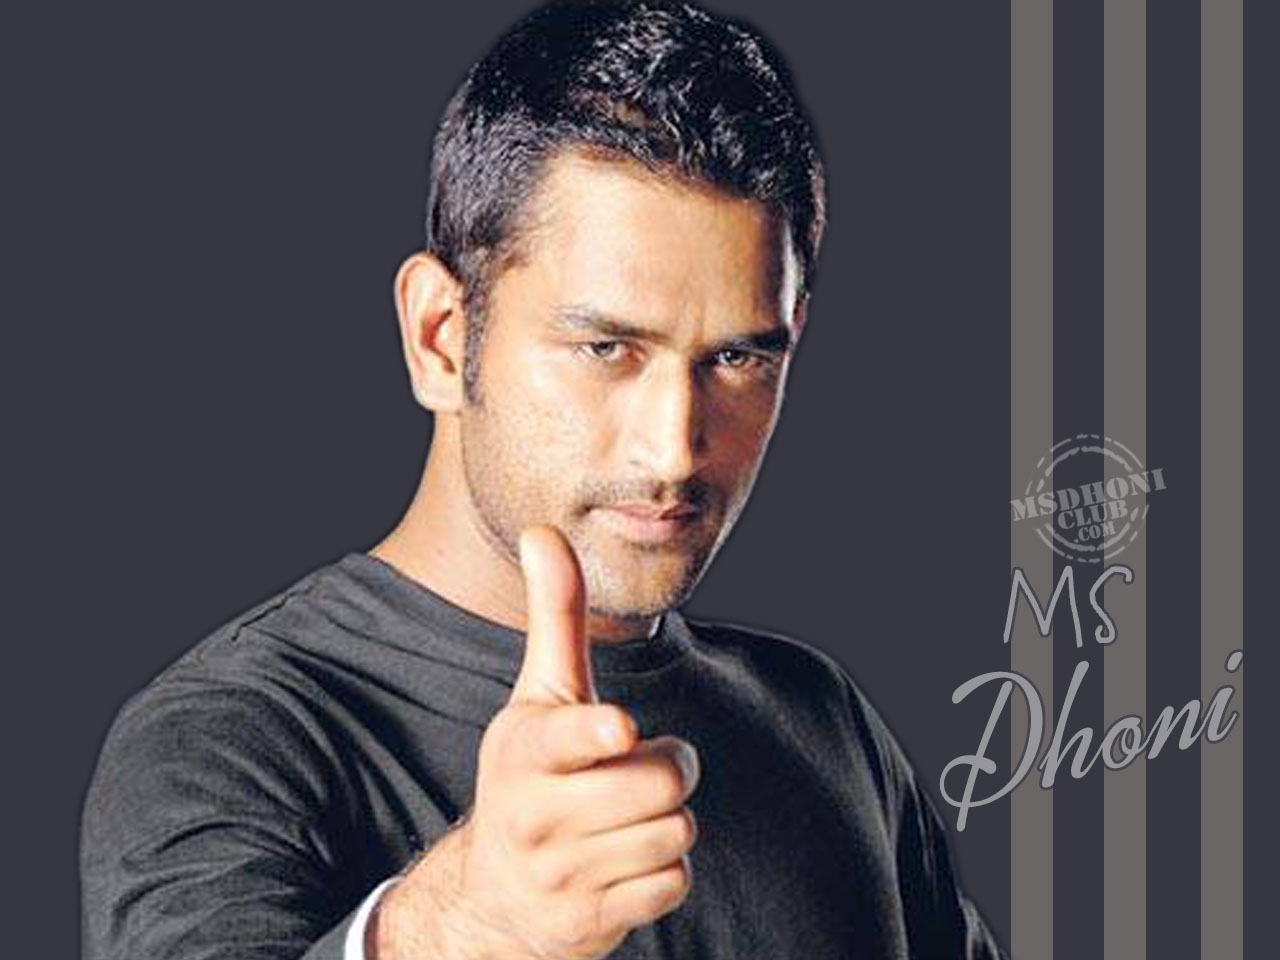 In just 4 years of captaincy mahendra singh dhoni has emerged as one